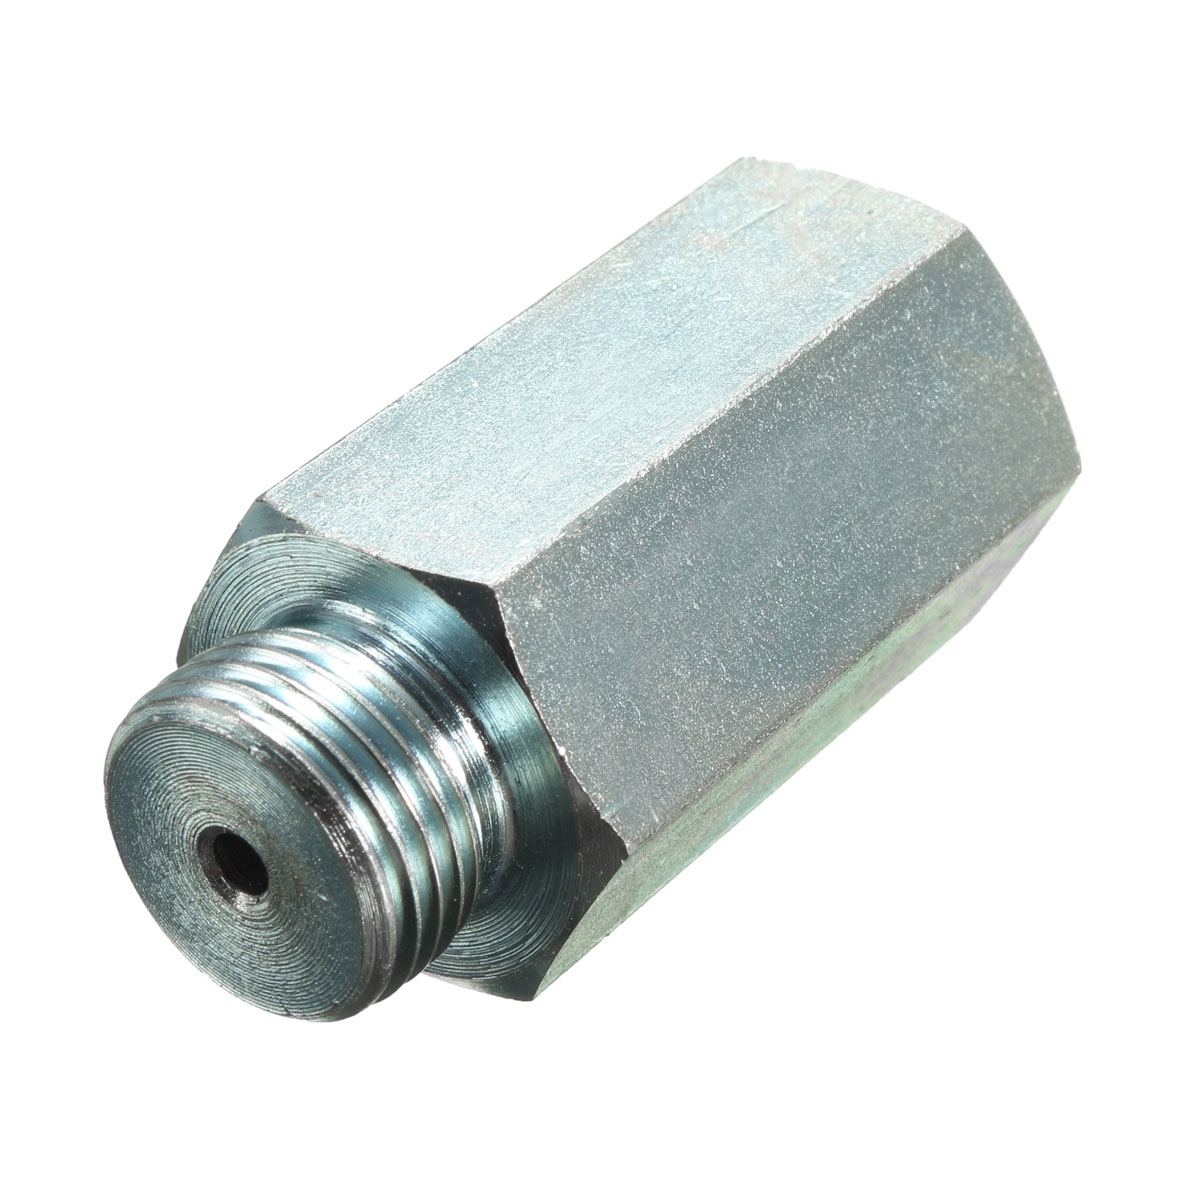 M18x1.5 Oxygen Sensor Extender Spacer Joints Converter for Lambda /decat /hydrogen